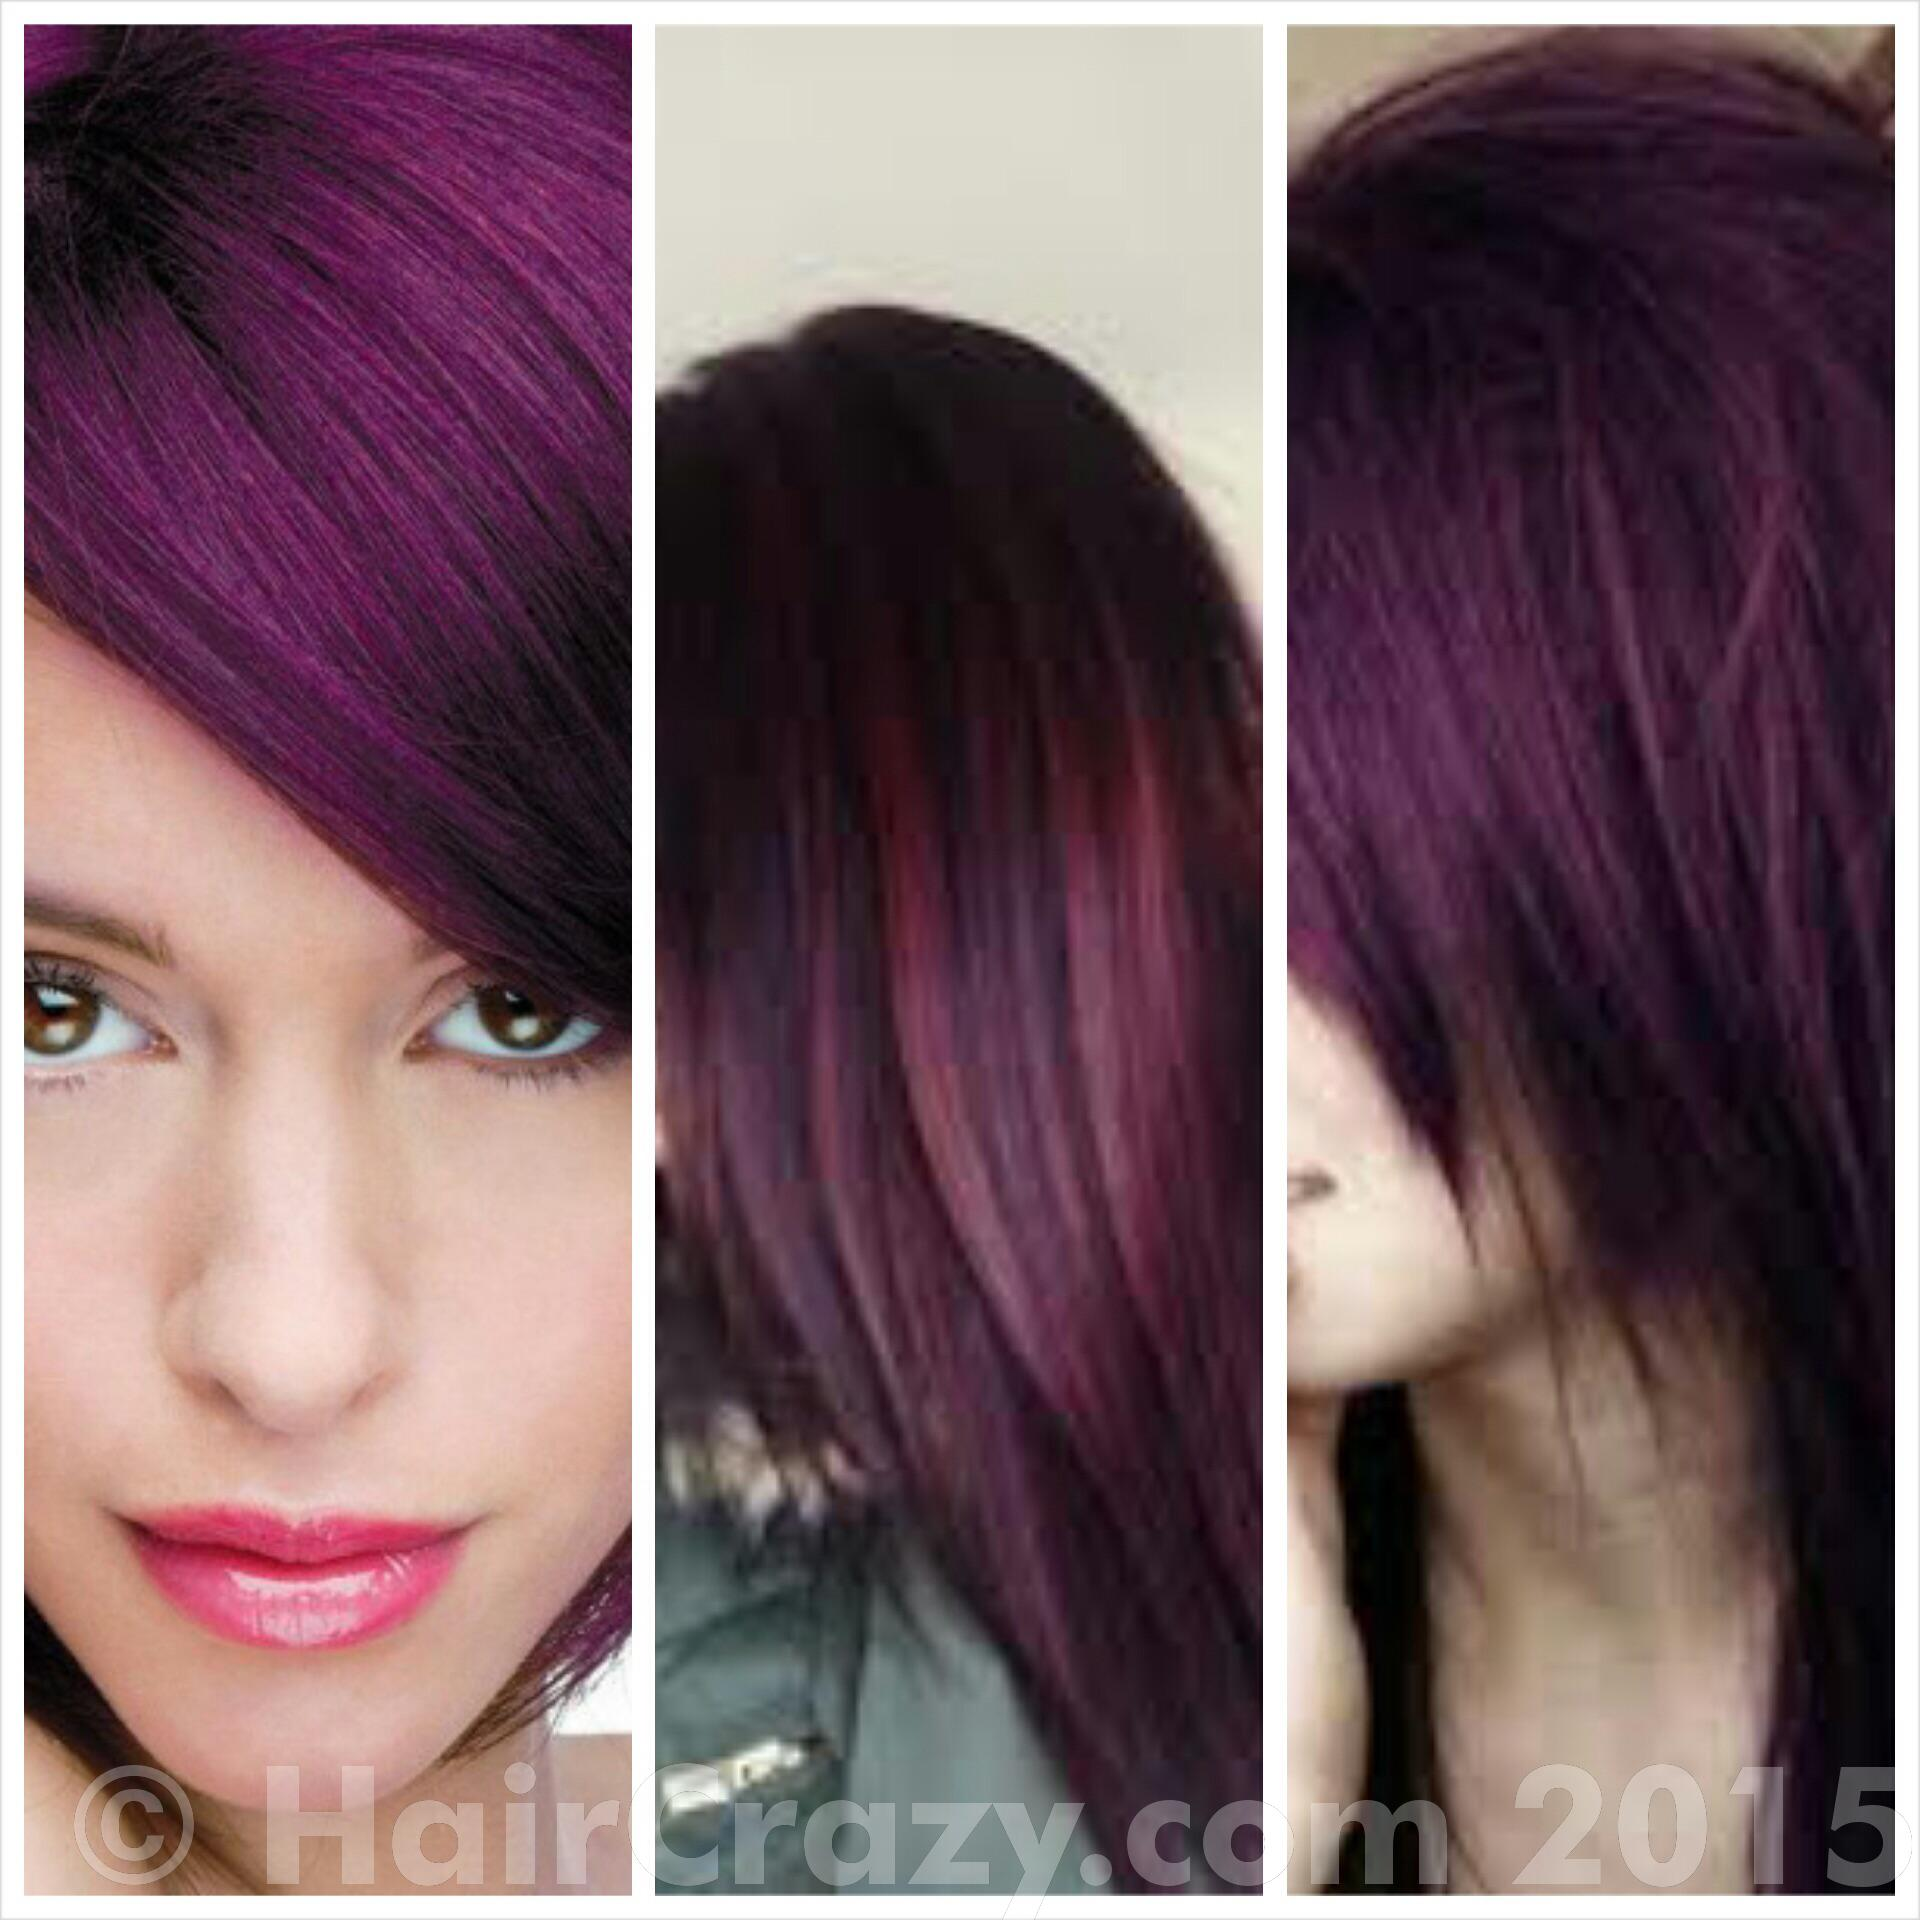 my hair goals - Crazy Color Aubergine